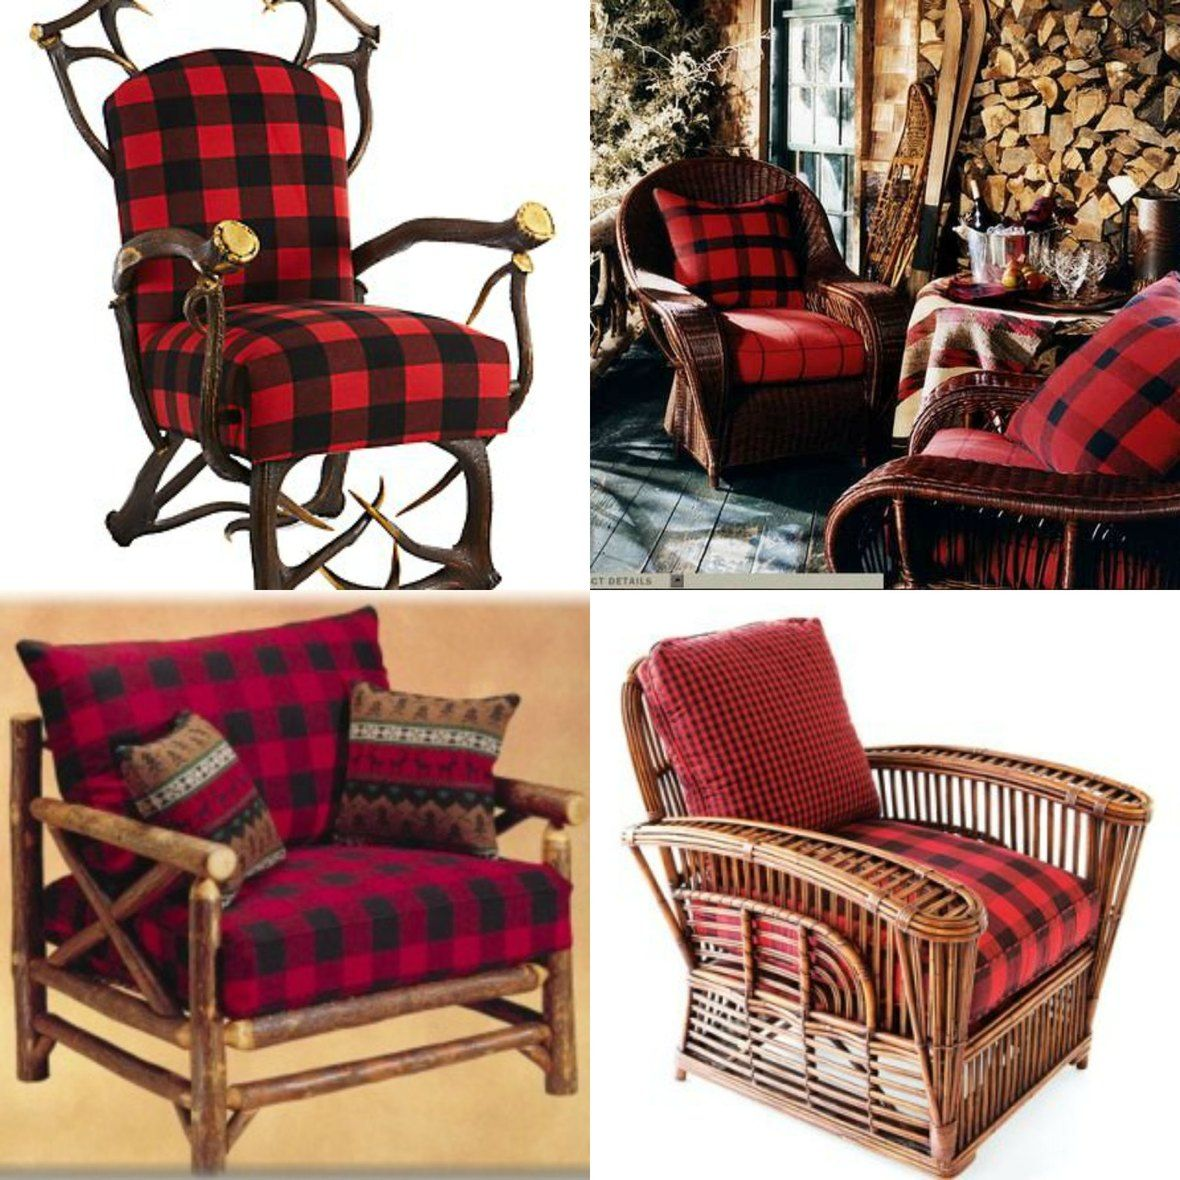 Buffalo Plaid Chair Ergonomic Kneeling Posture Office What 39s Red And Black Checked All Over